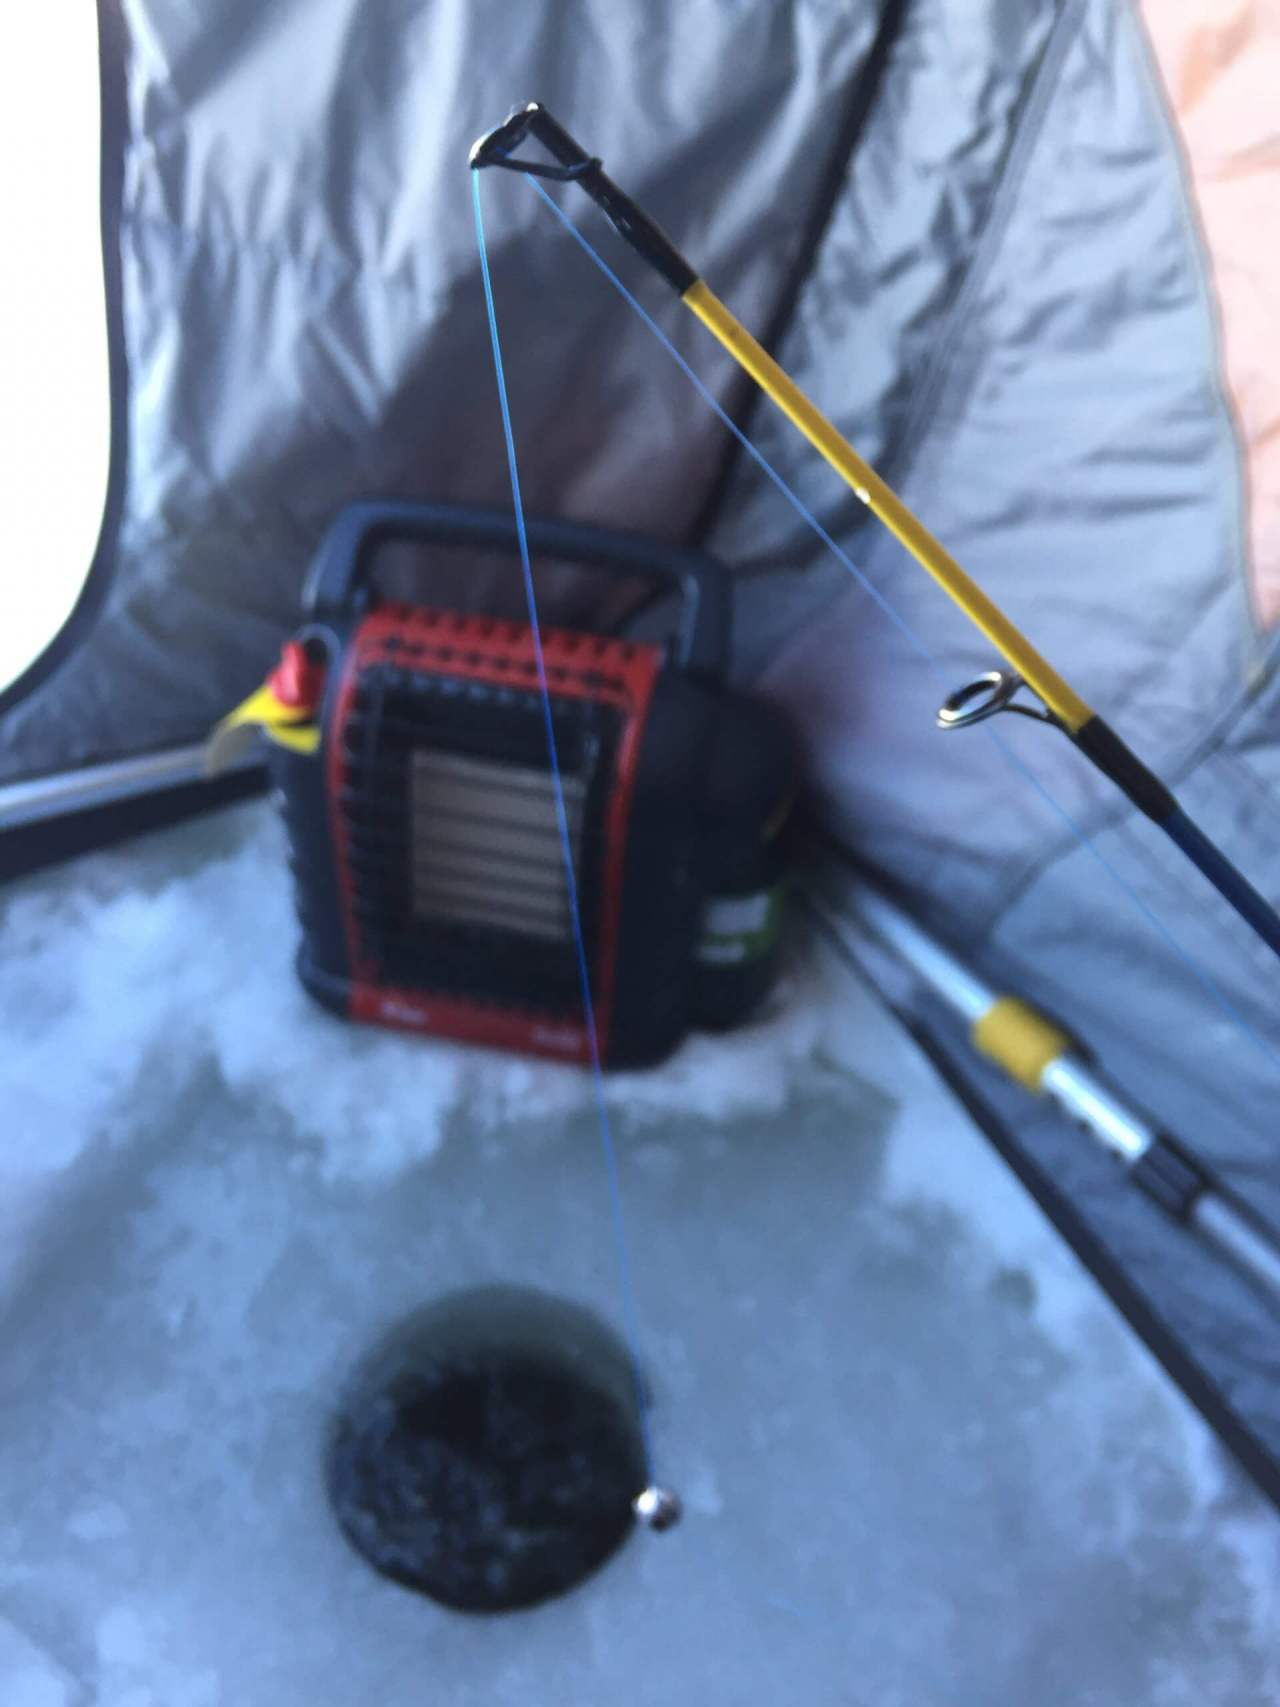 Windy Lake Ice Fishing Set Up with Electric Heater & Fishing Rod